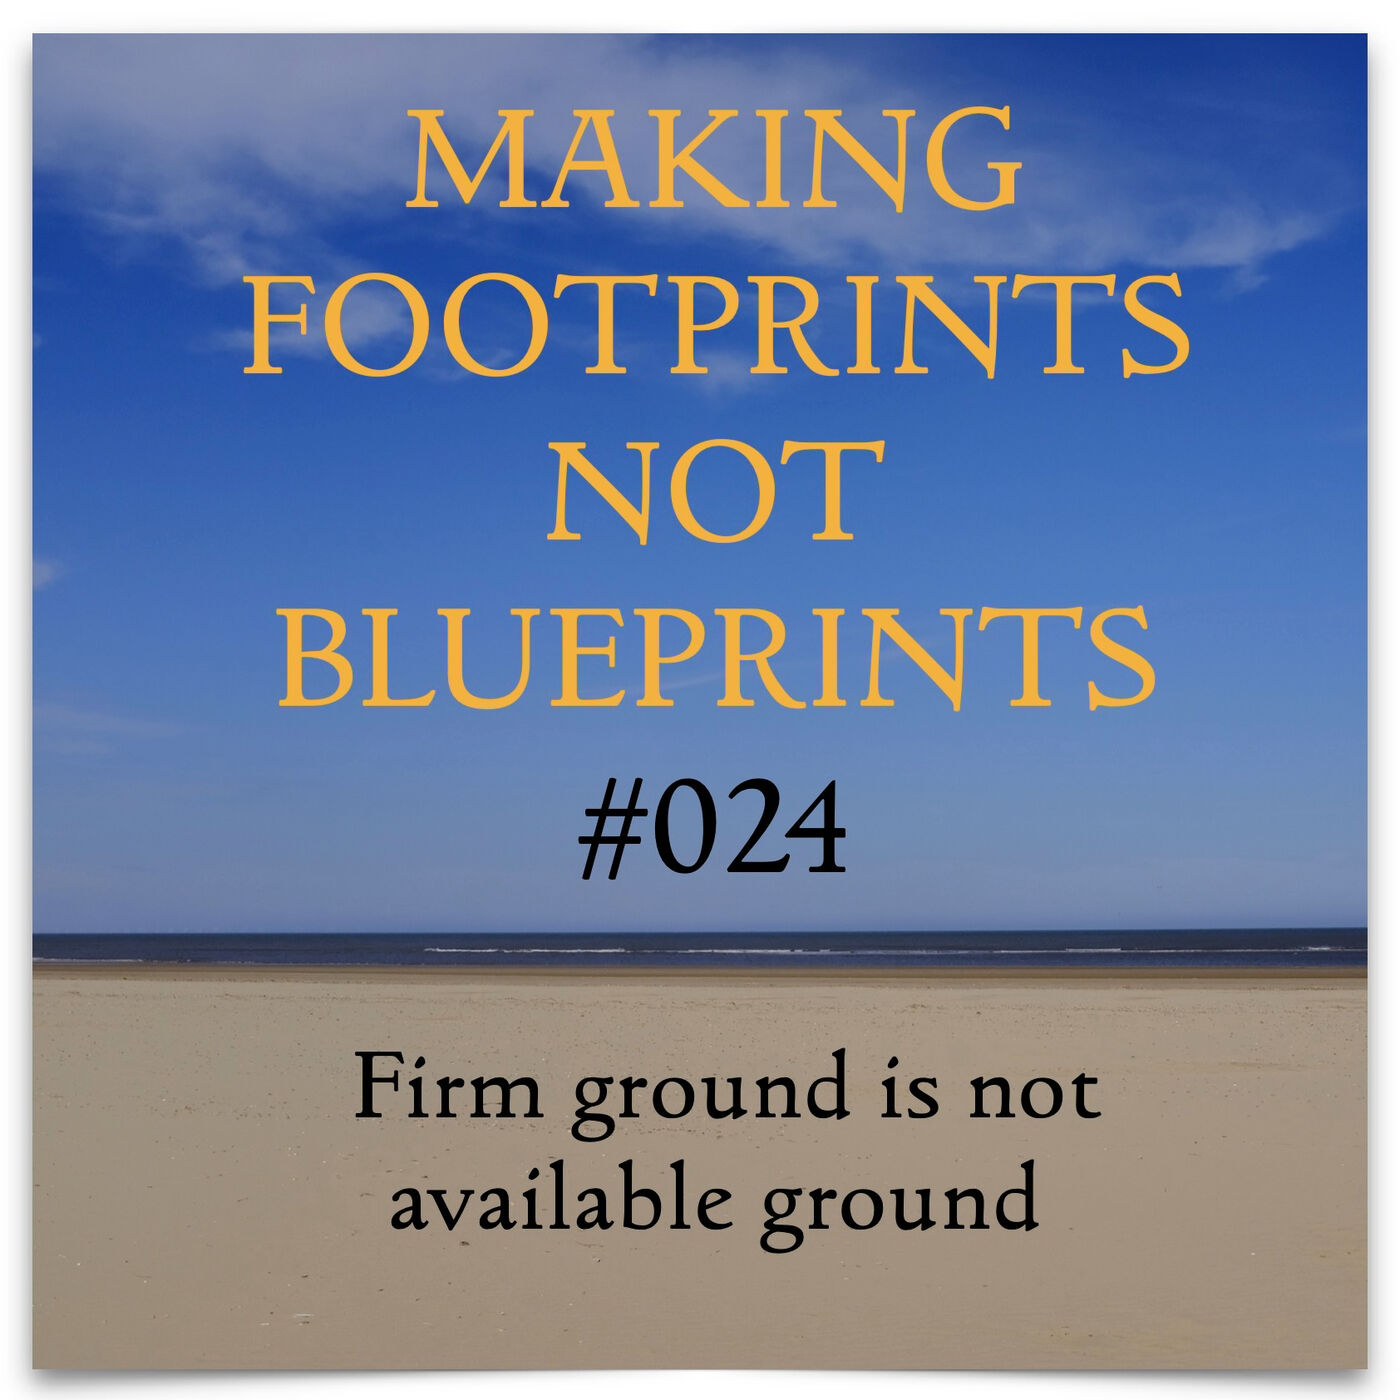 S01 #24 - Firm ground is not available ground